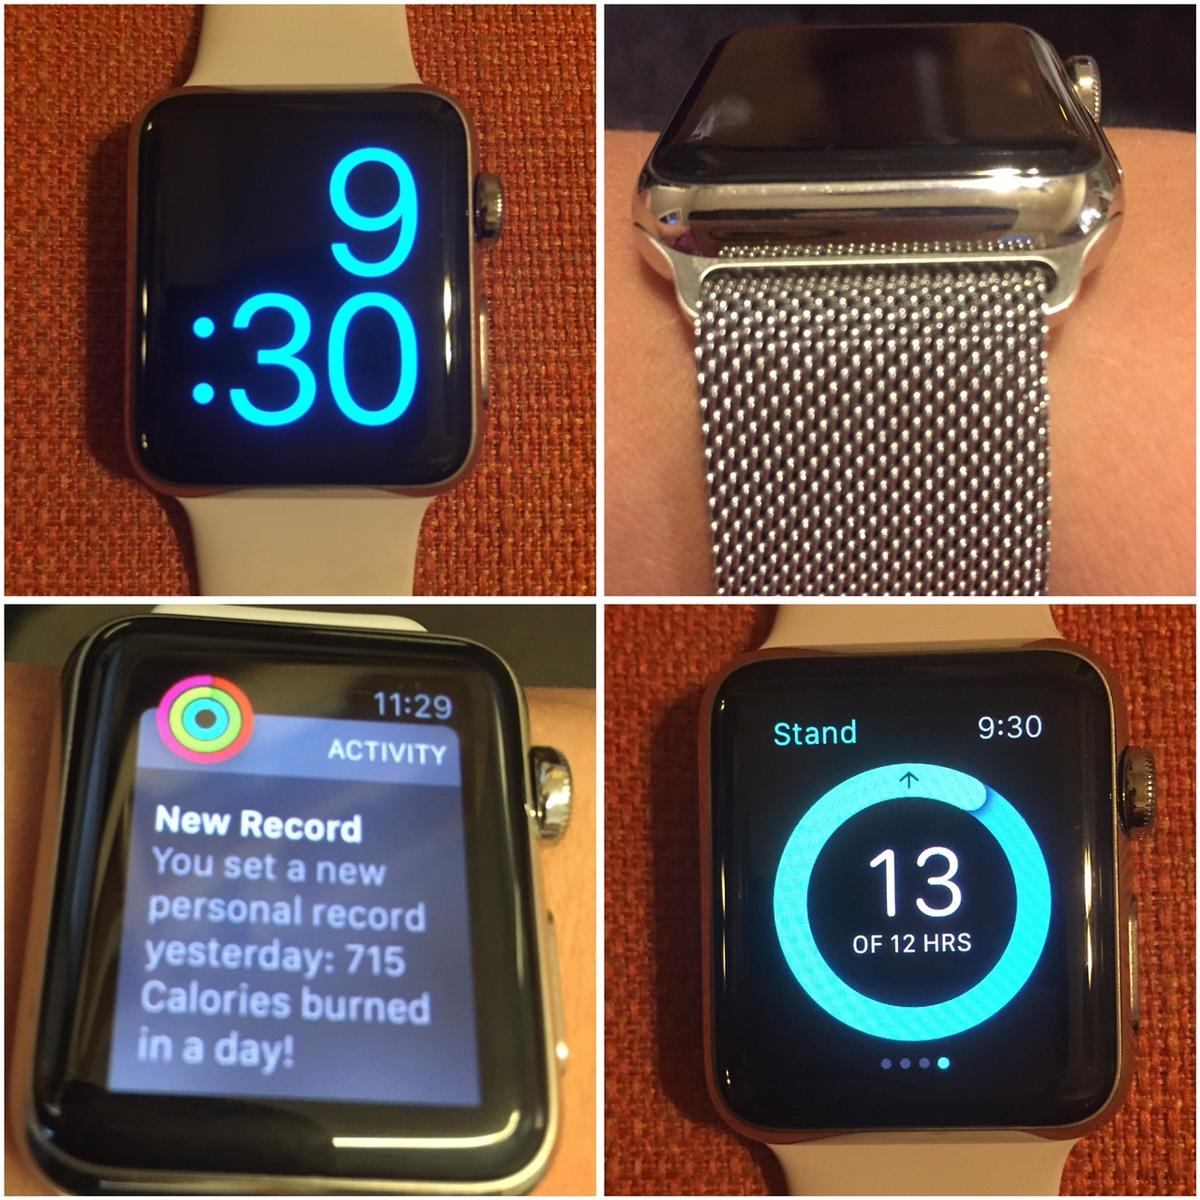 Apple Watch Collage